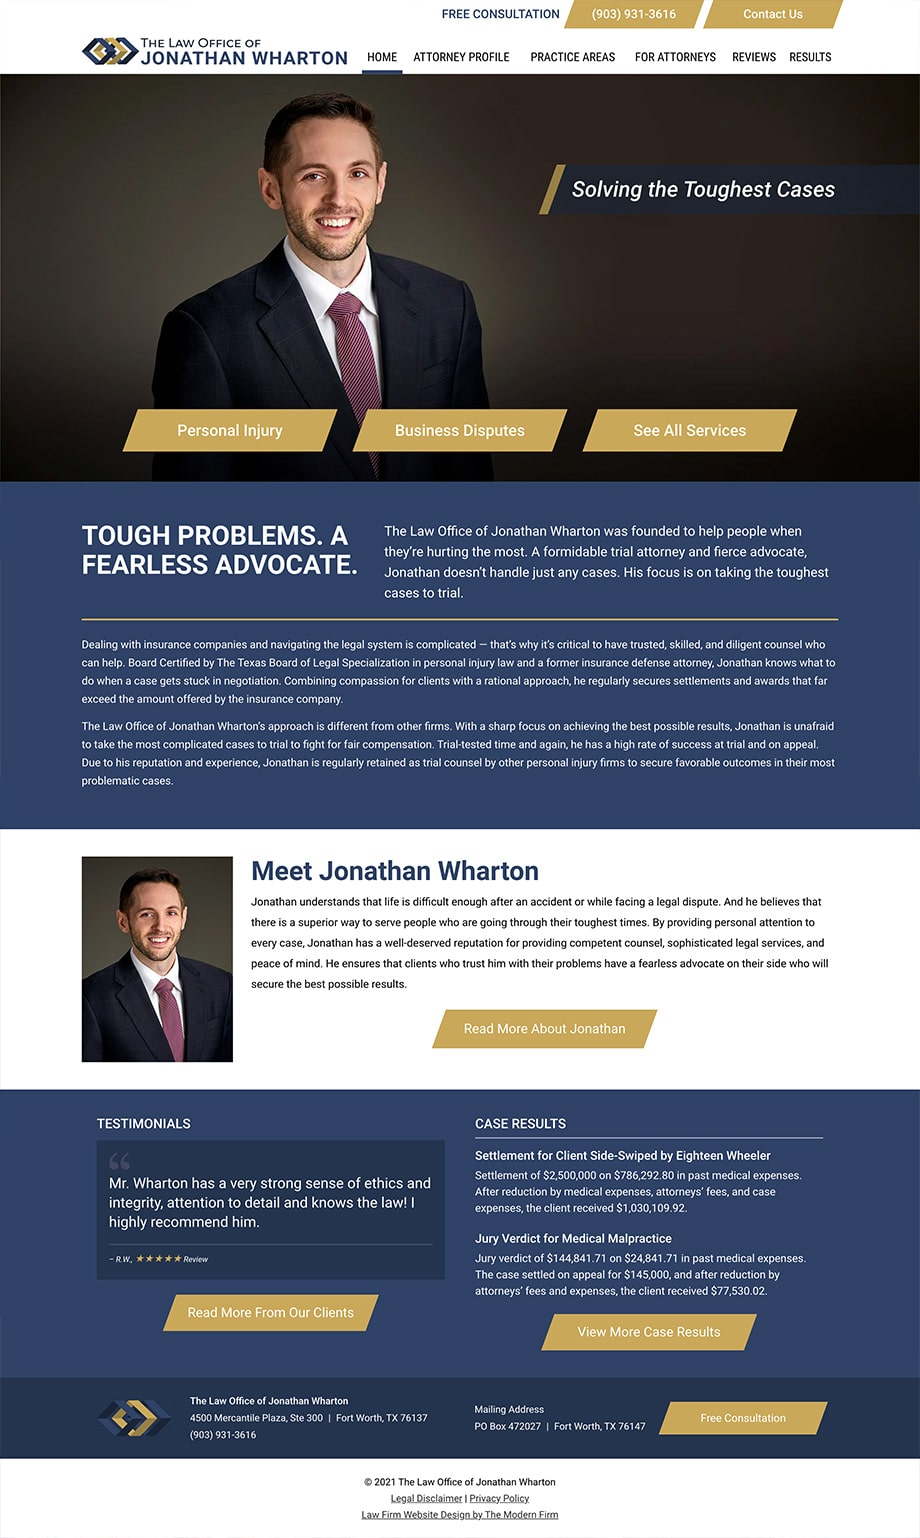 Law Firm Website Design for The Law Office of Jonathan Wharton